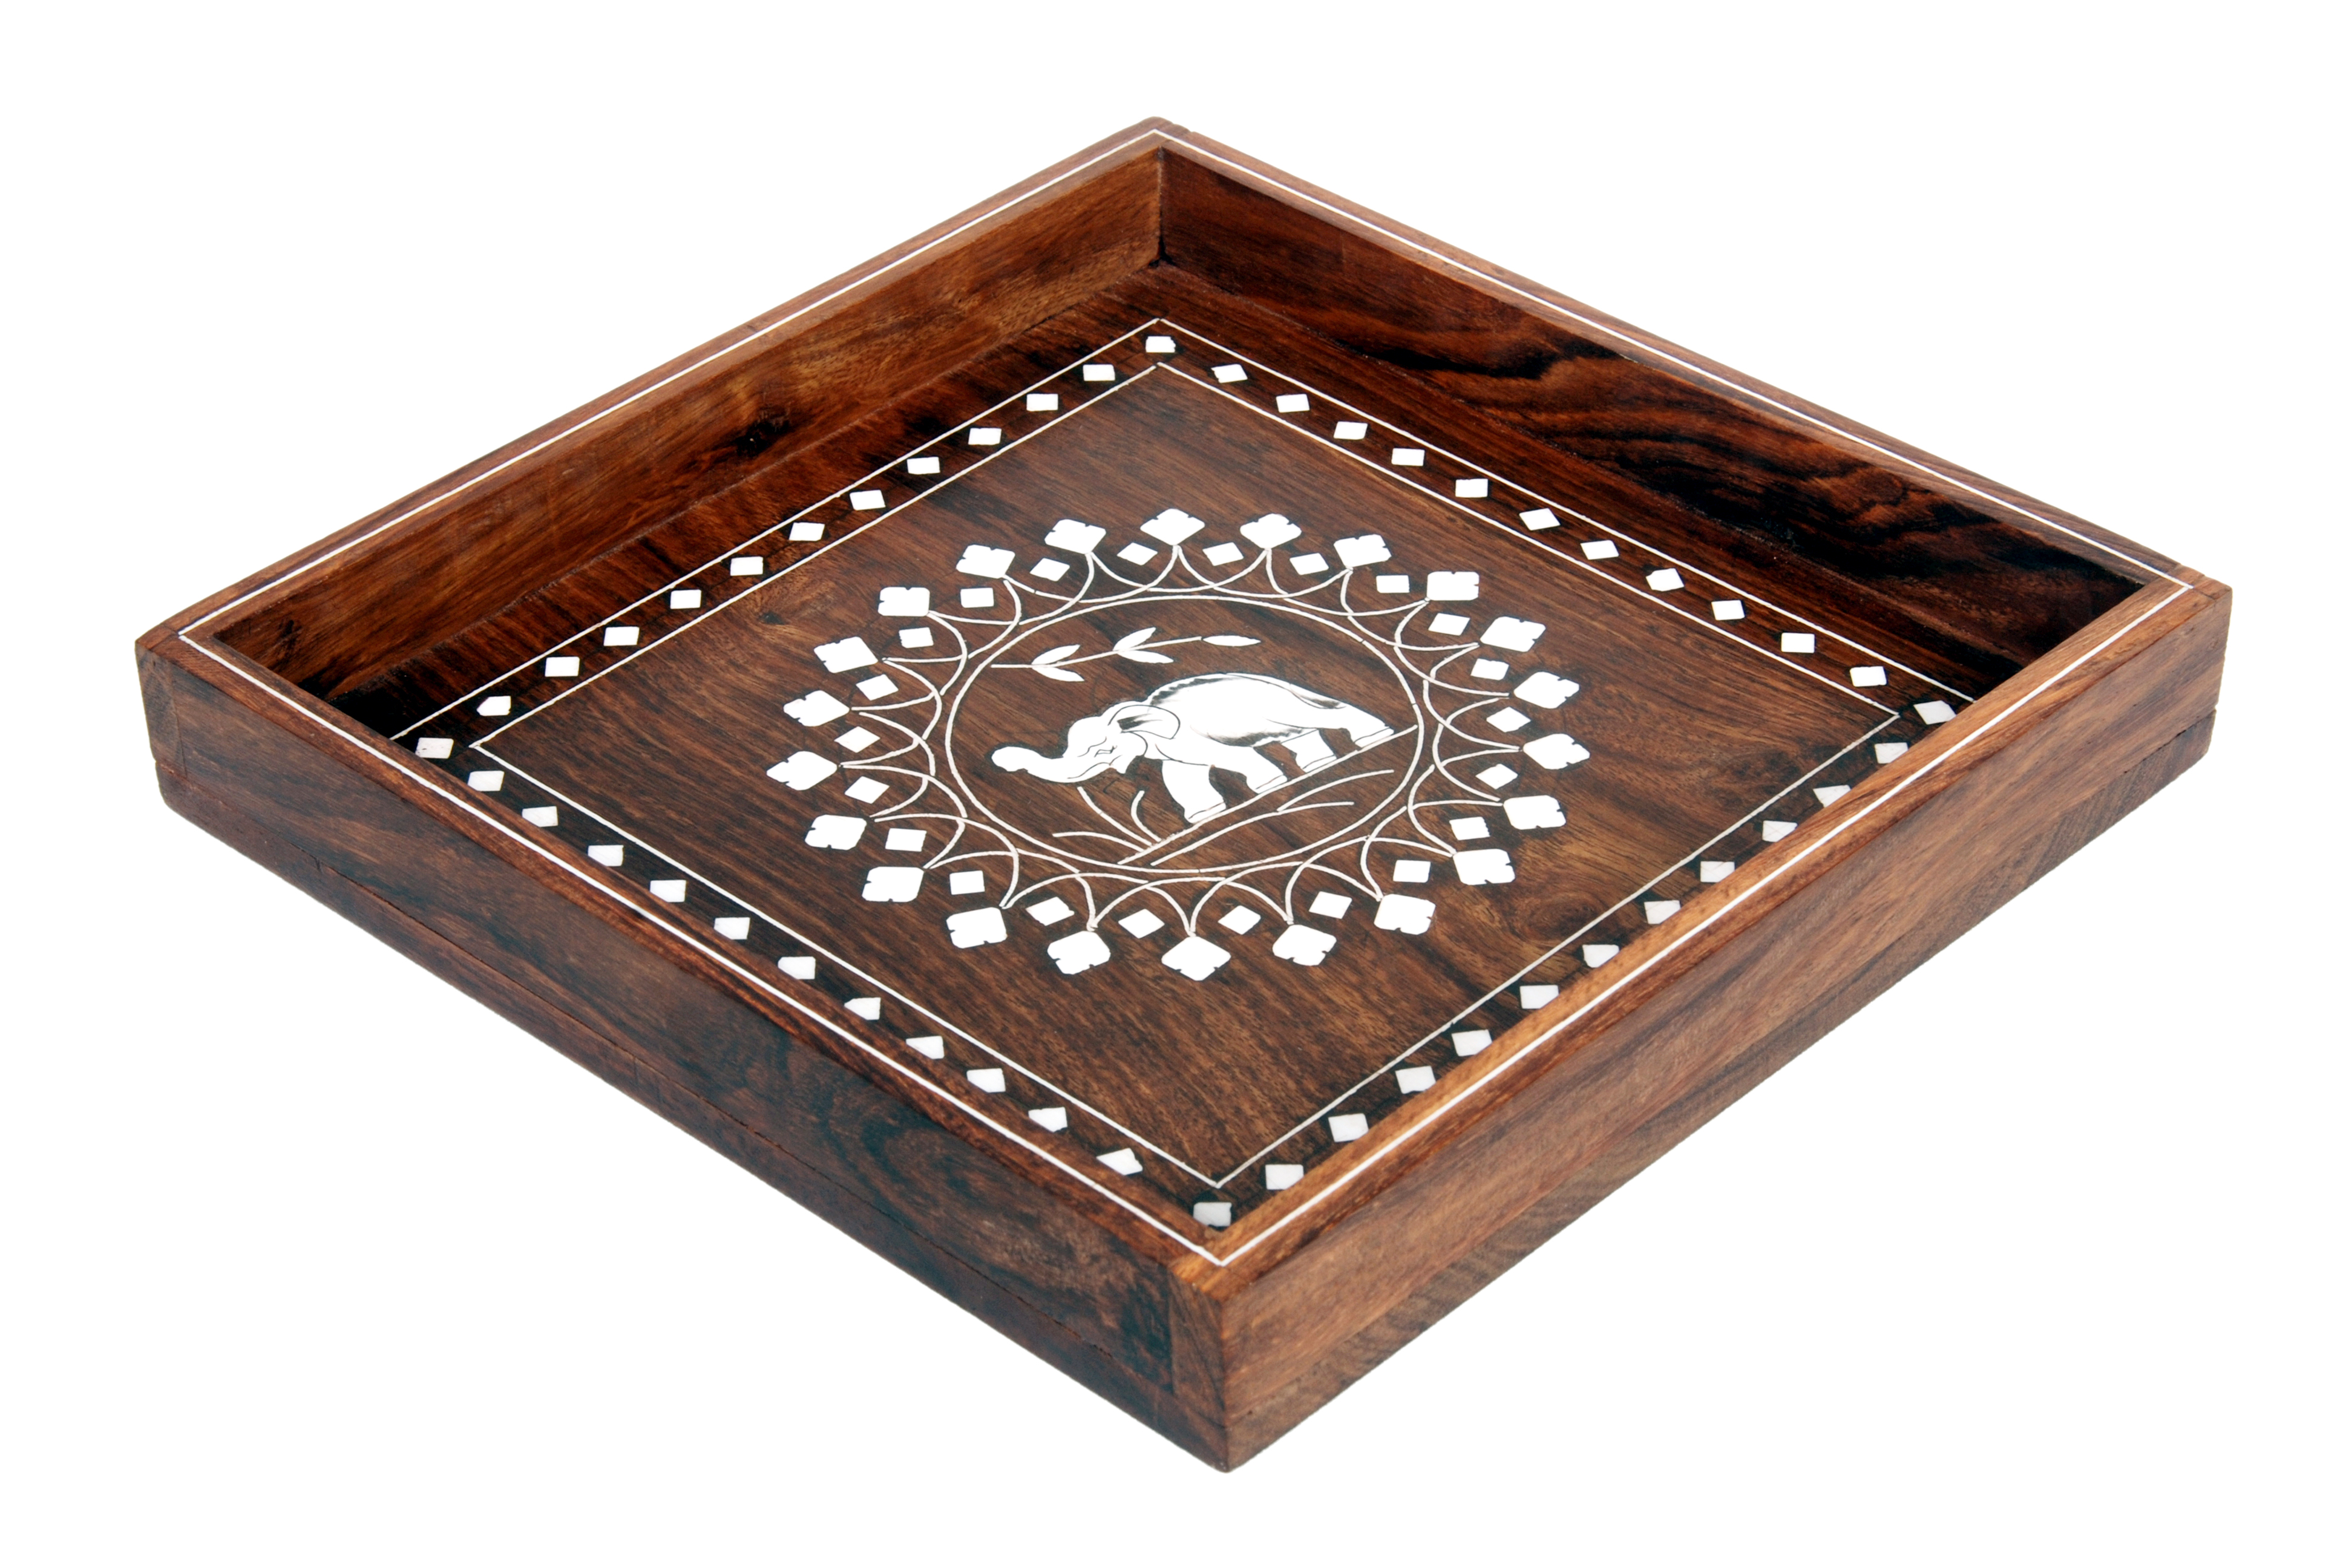 wooden inlay serving tray.